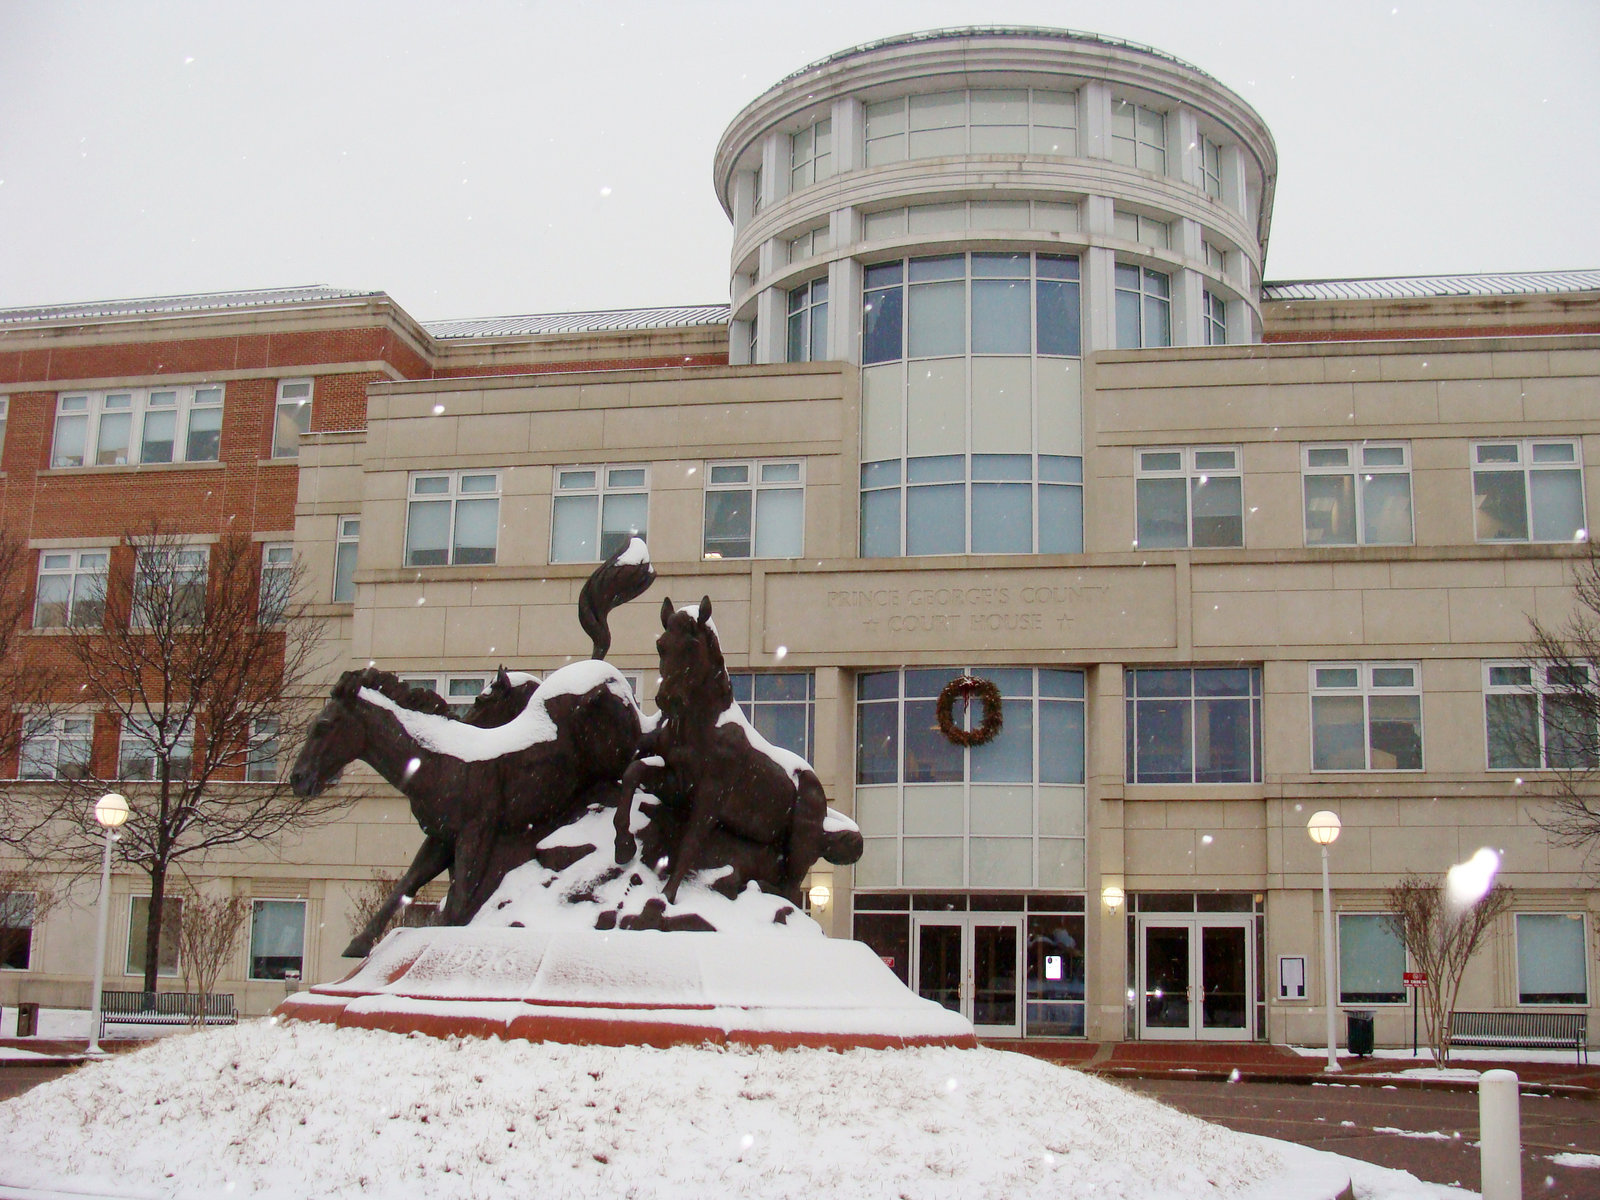 Prince George's County District Court in Maryland has used a mental health court as an alternative to traditional criminal proceedings. Sallicio/Wikimedia